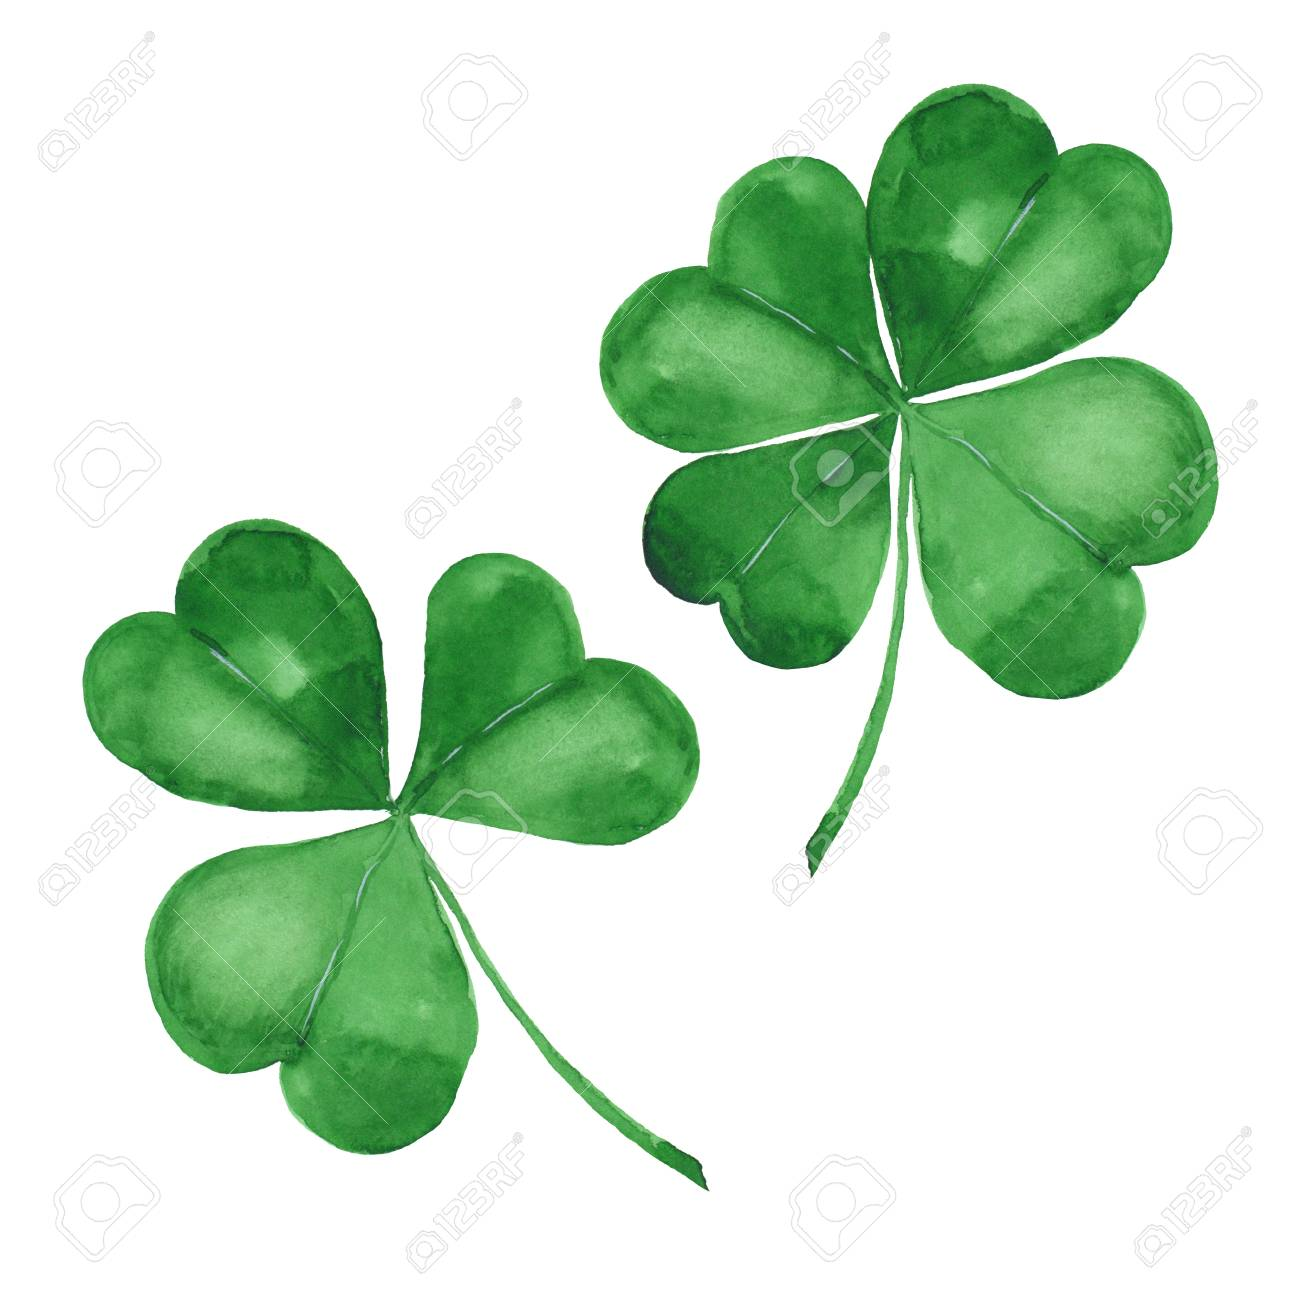 Watercolor clover. Green four leaf clover isolated on white - 114531726